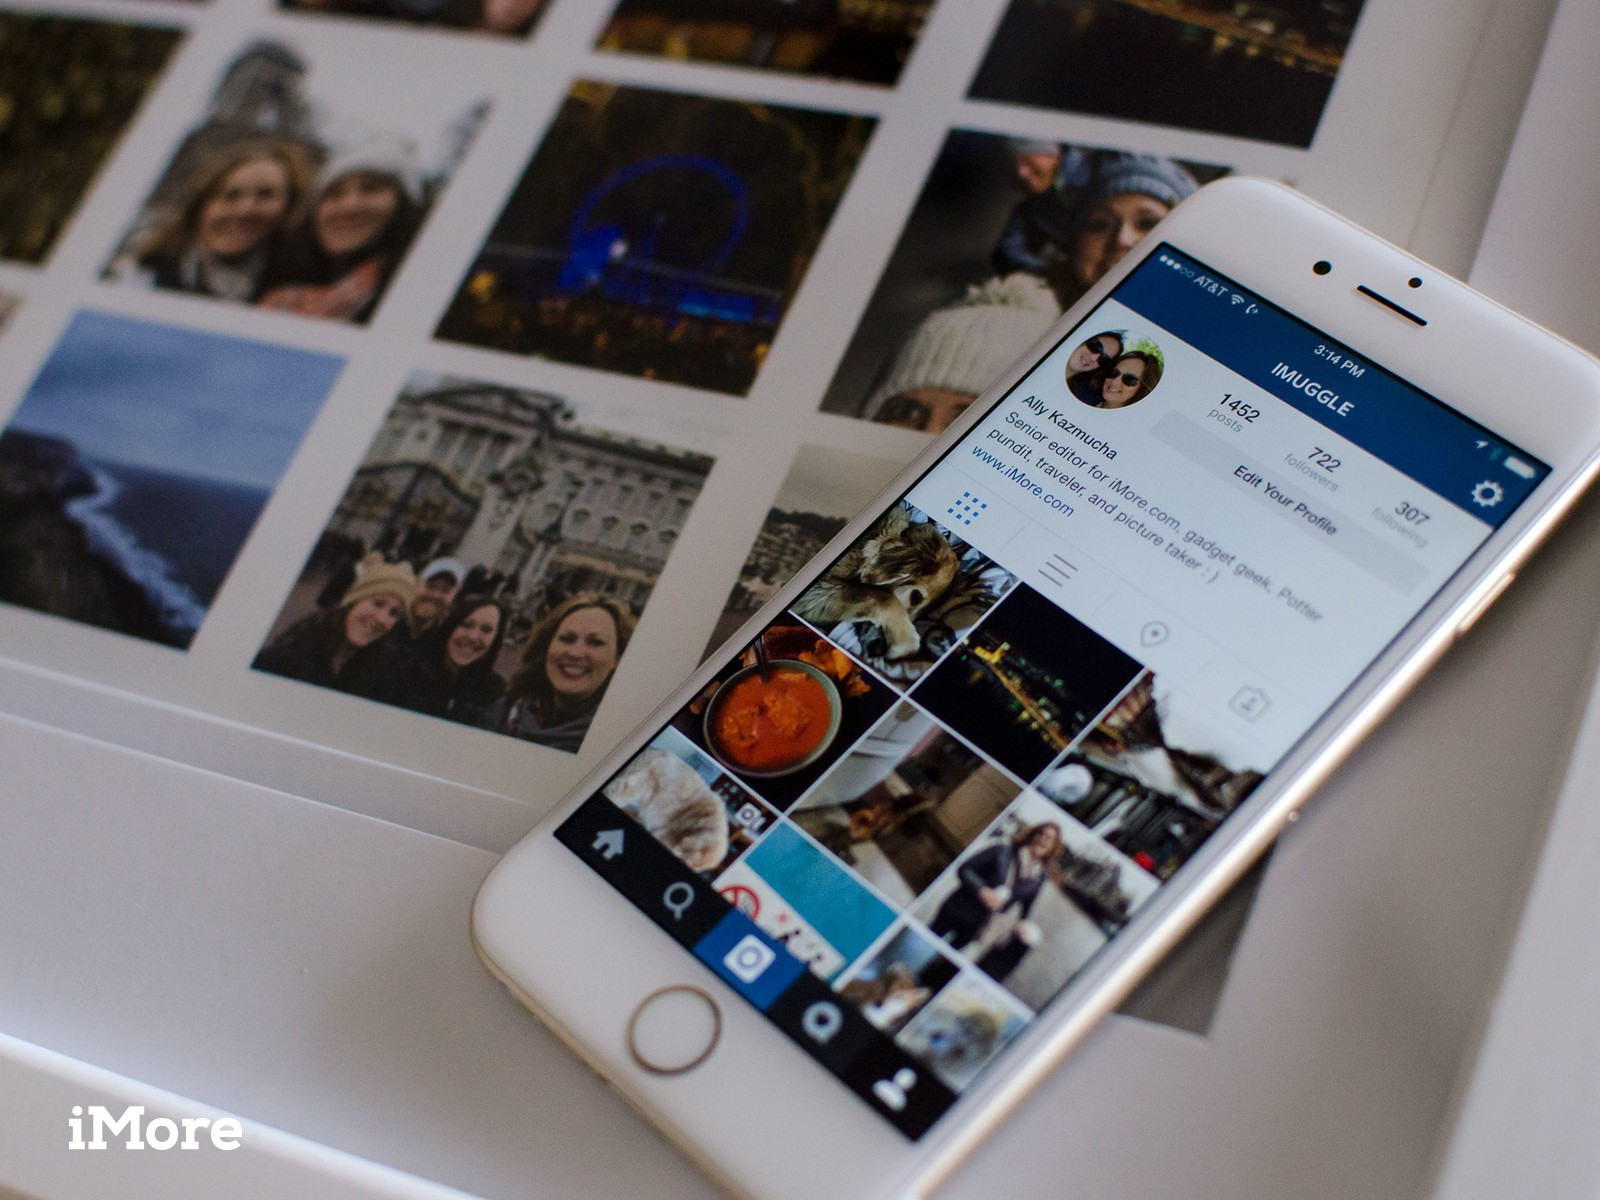 DIY: How to make an awesome wall collage using your Instagram photos!